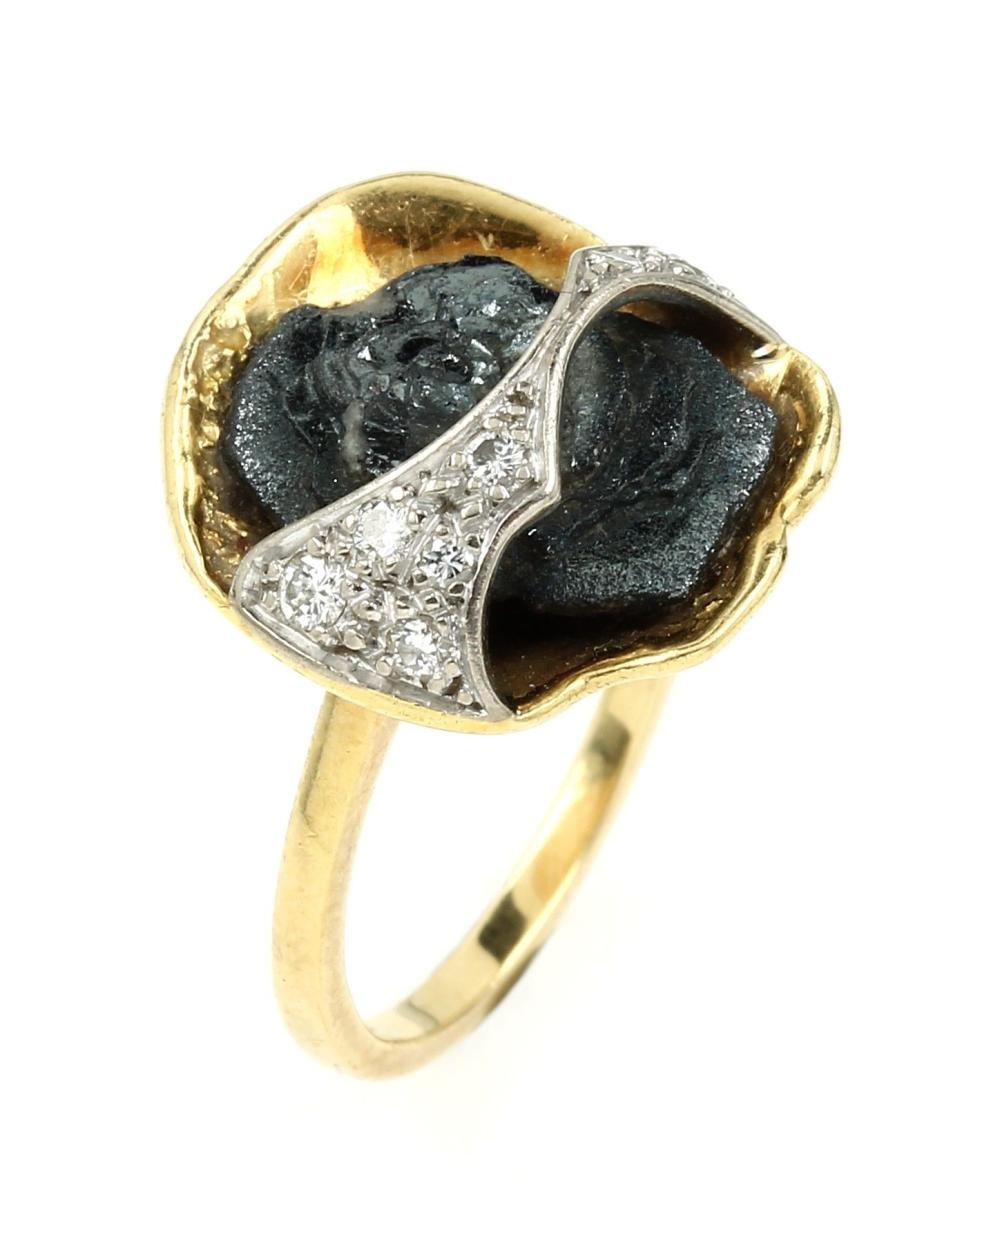 18 kt gold ring with meteorite and diamonds